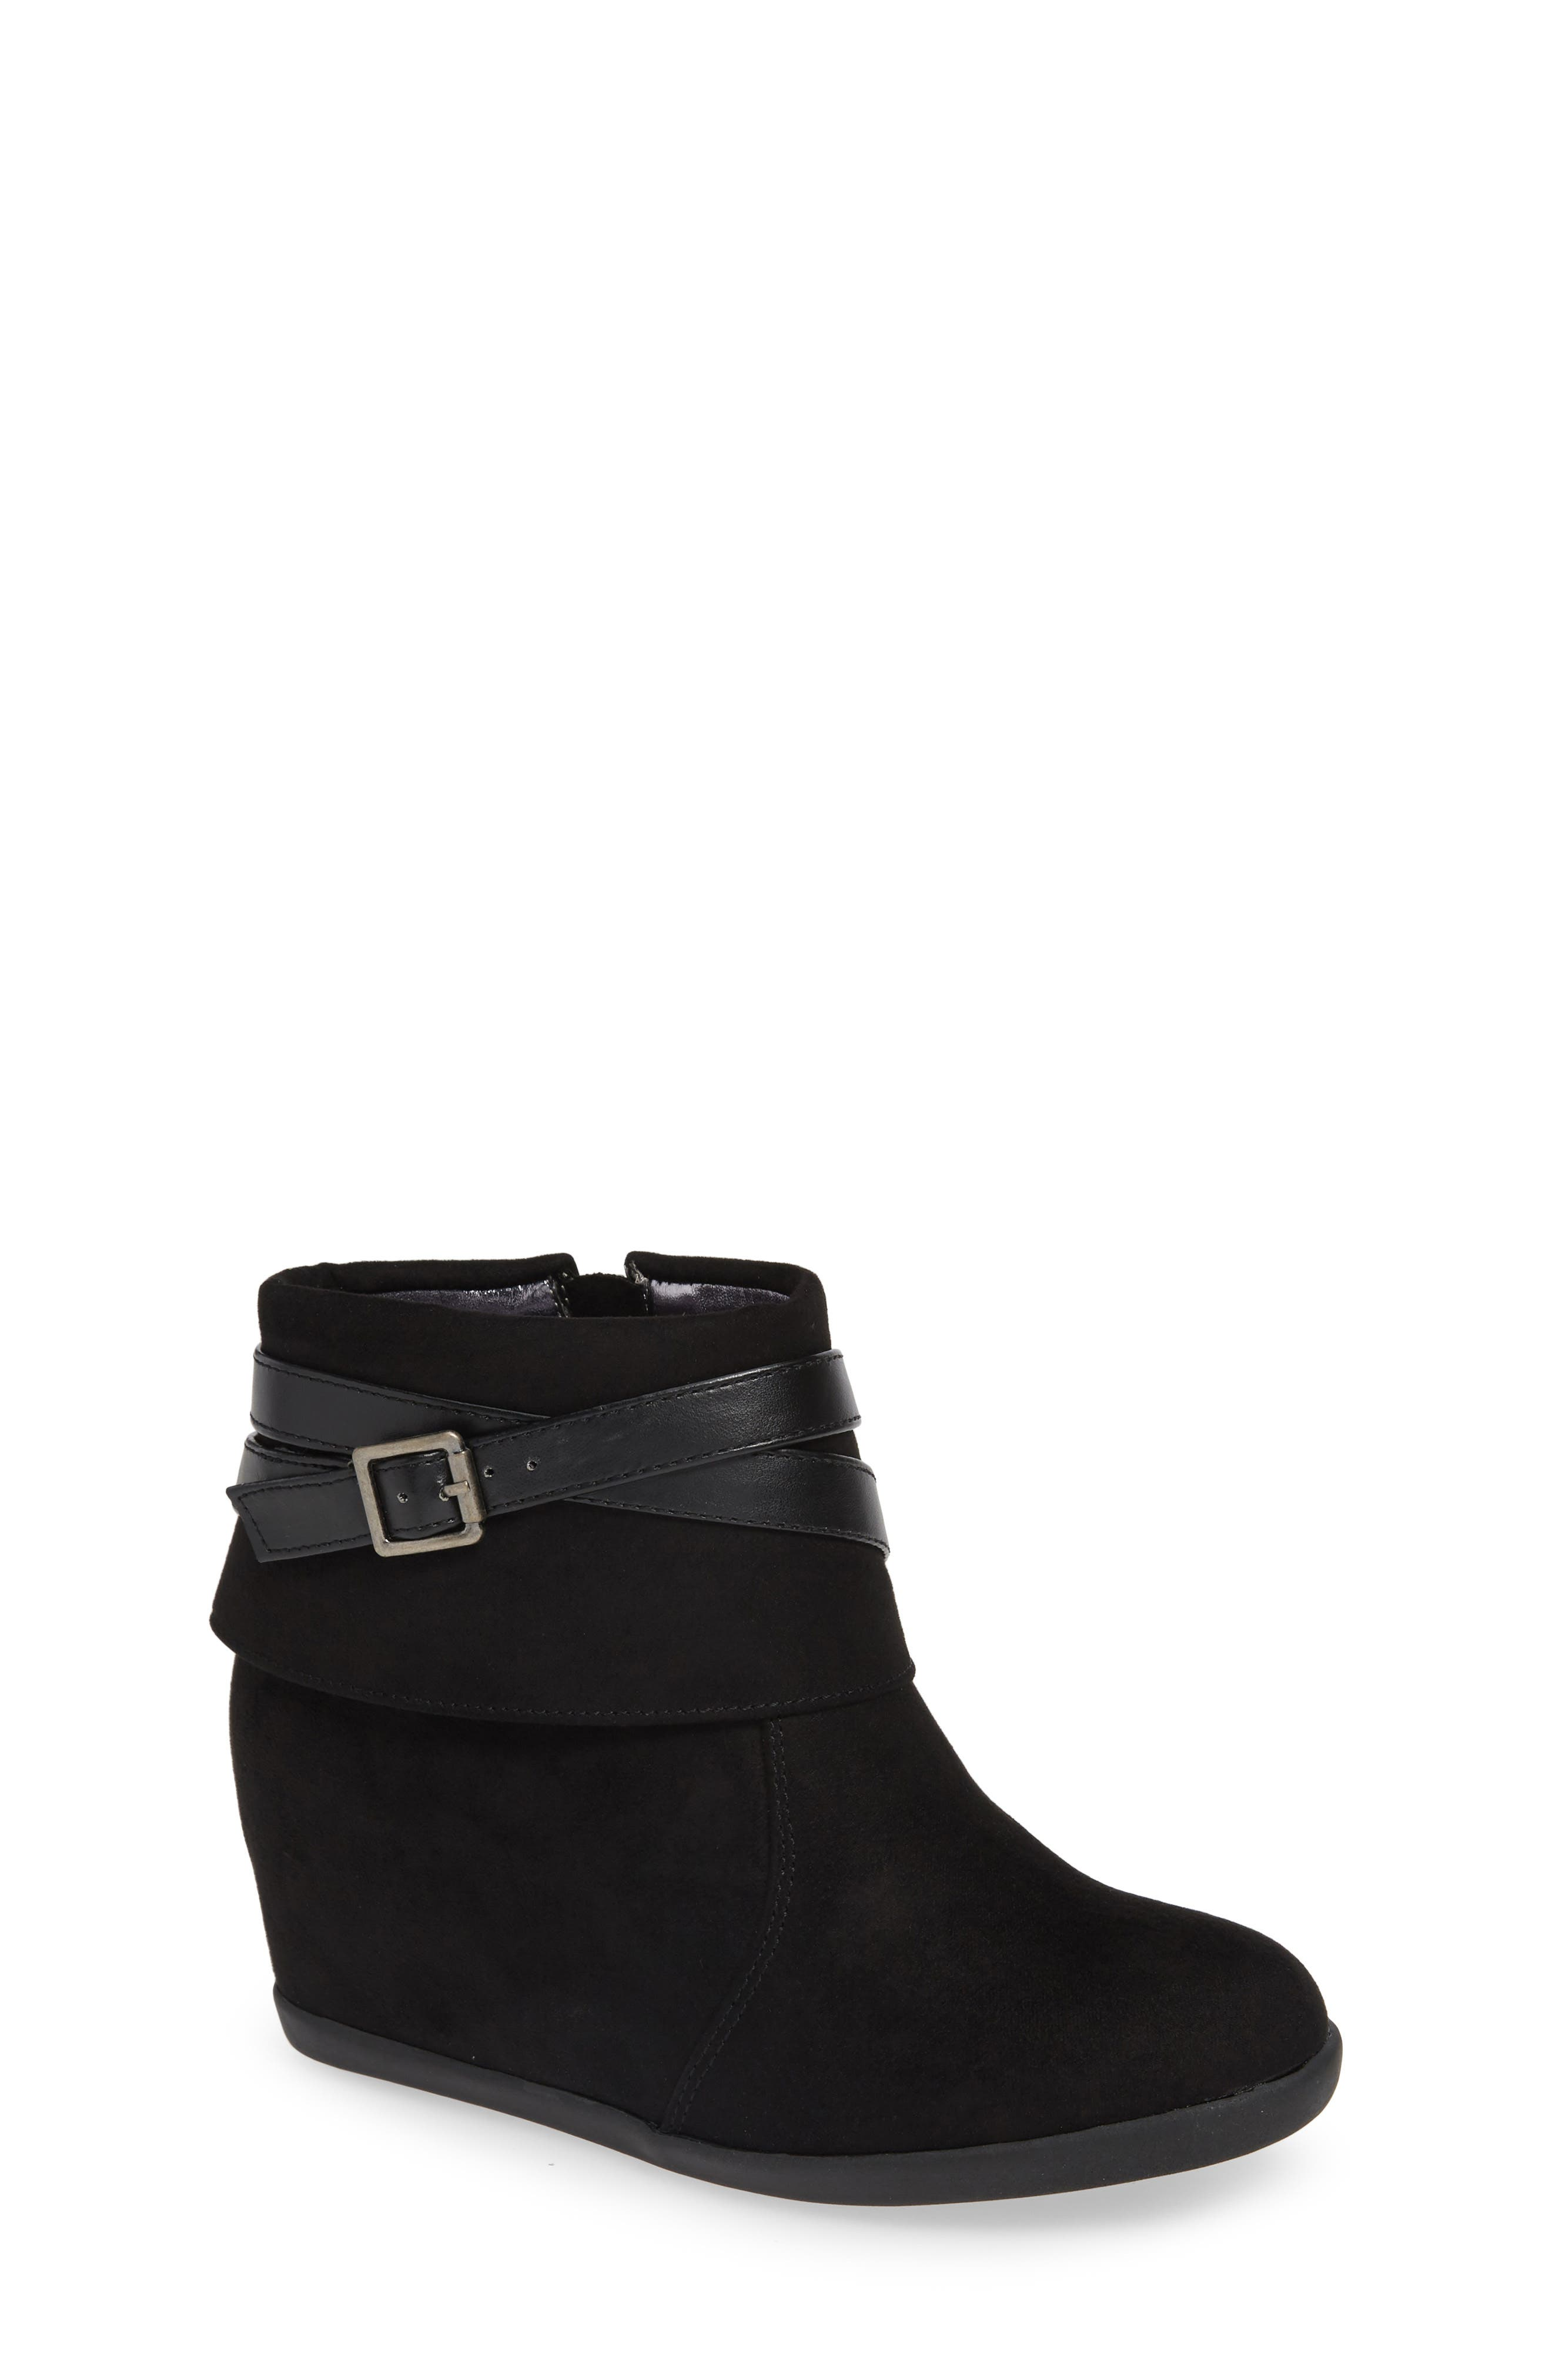 Valentina Belted Wedge Bootie,                             Main thumbnail 1, color,                             BLACK